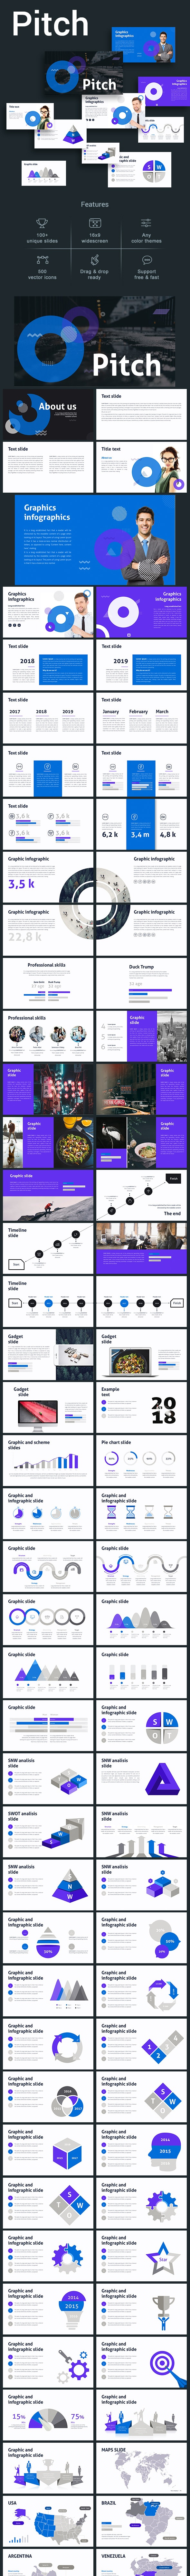 Pitch PowerPoint Template - Pitch Deck PowerPoint Templates